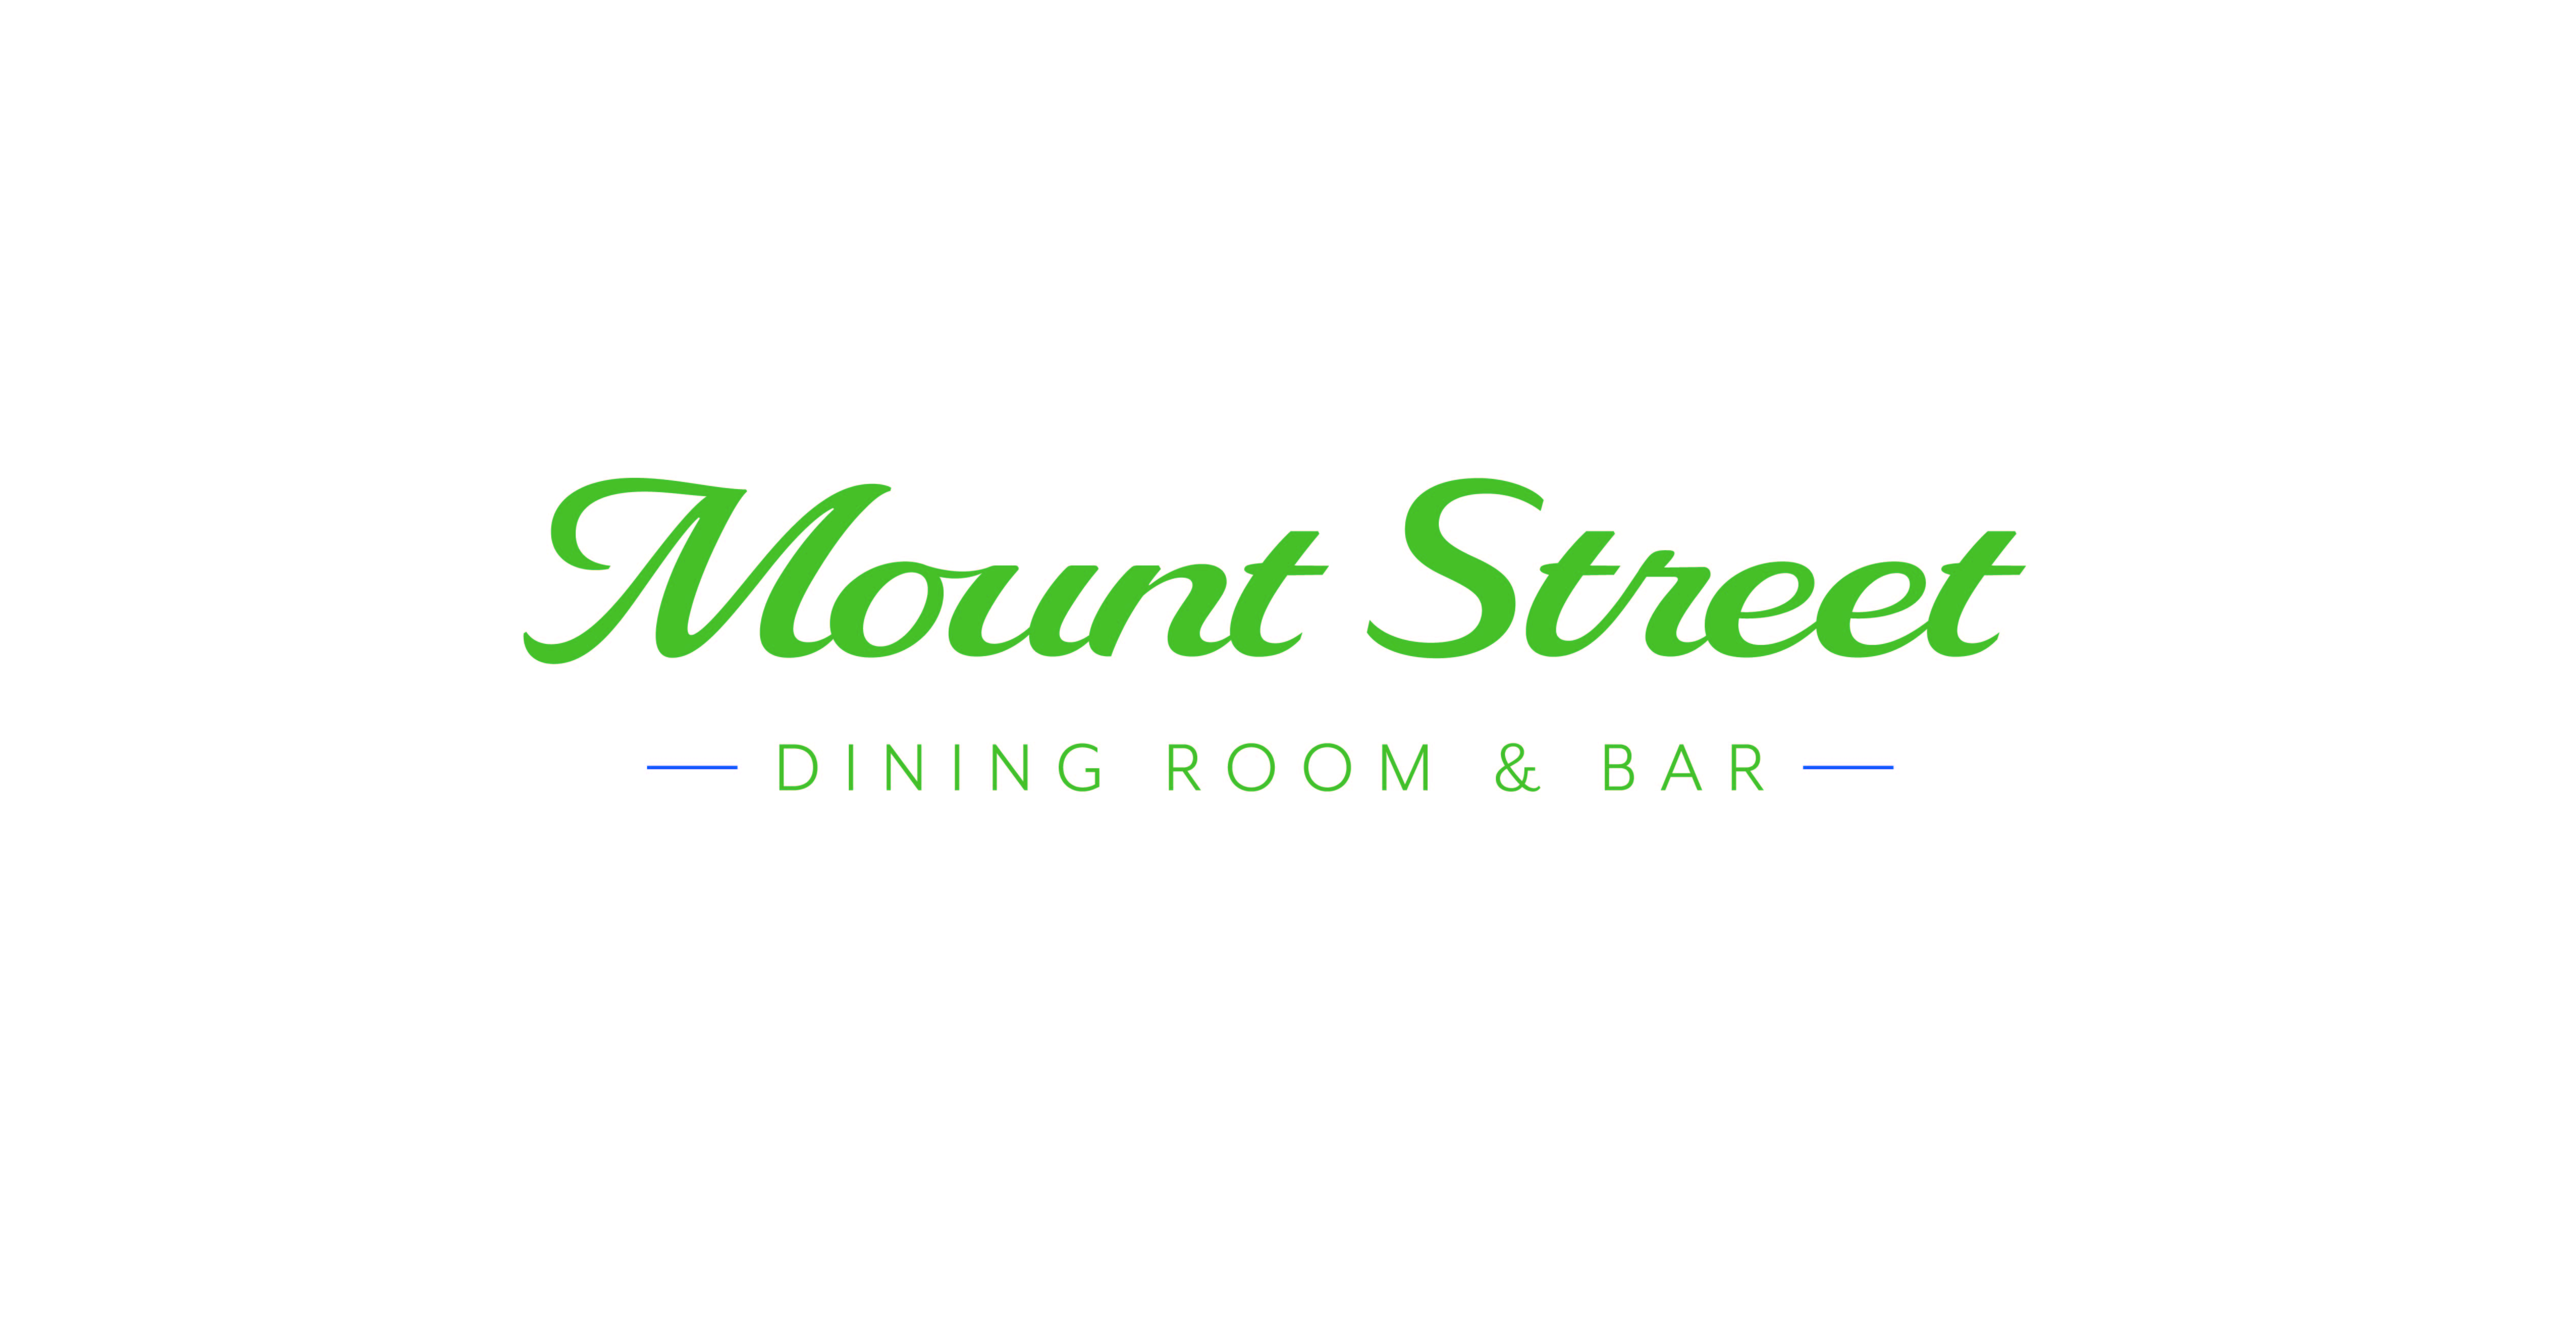 Image of Mount Street Dining Room & Bar